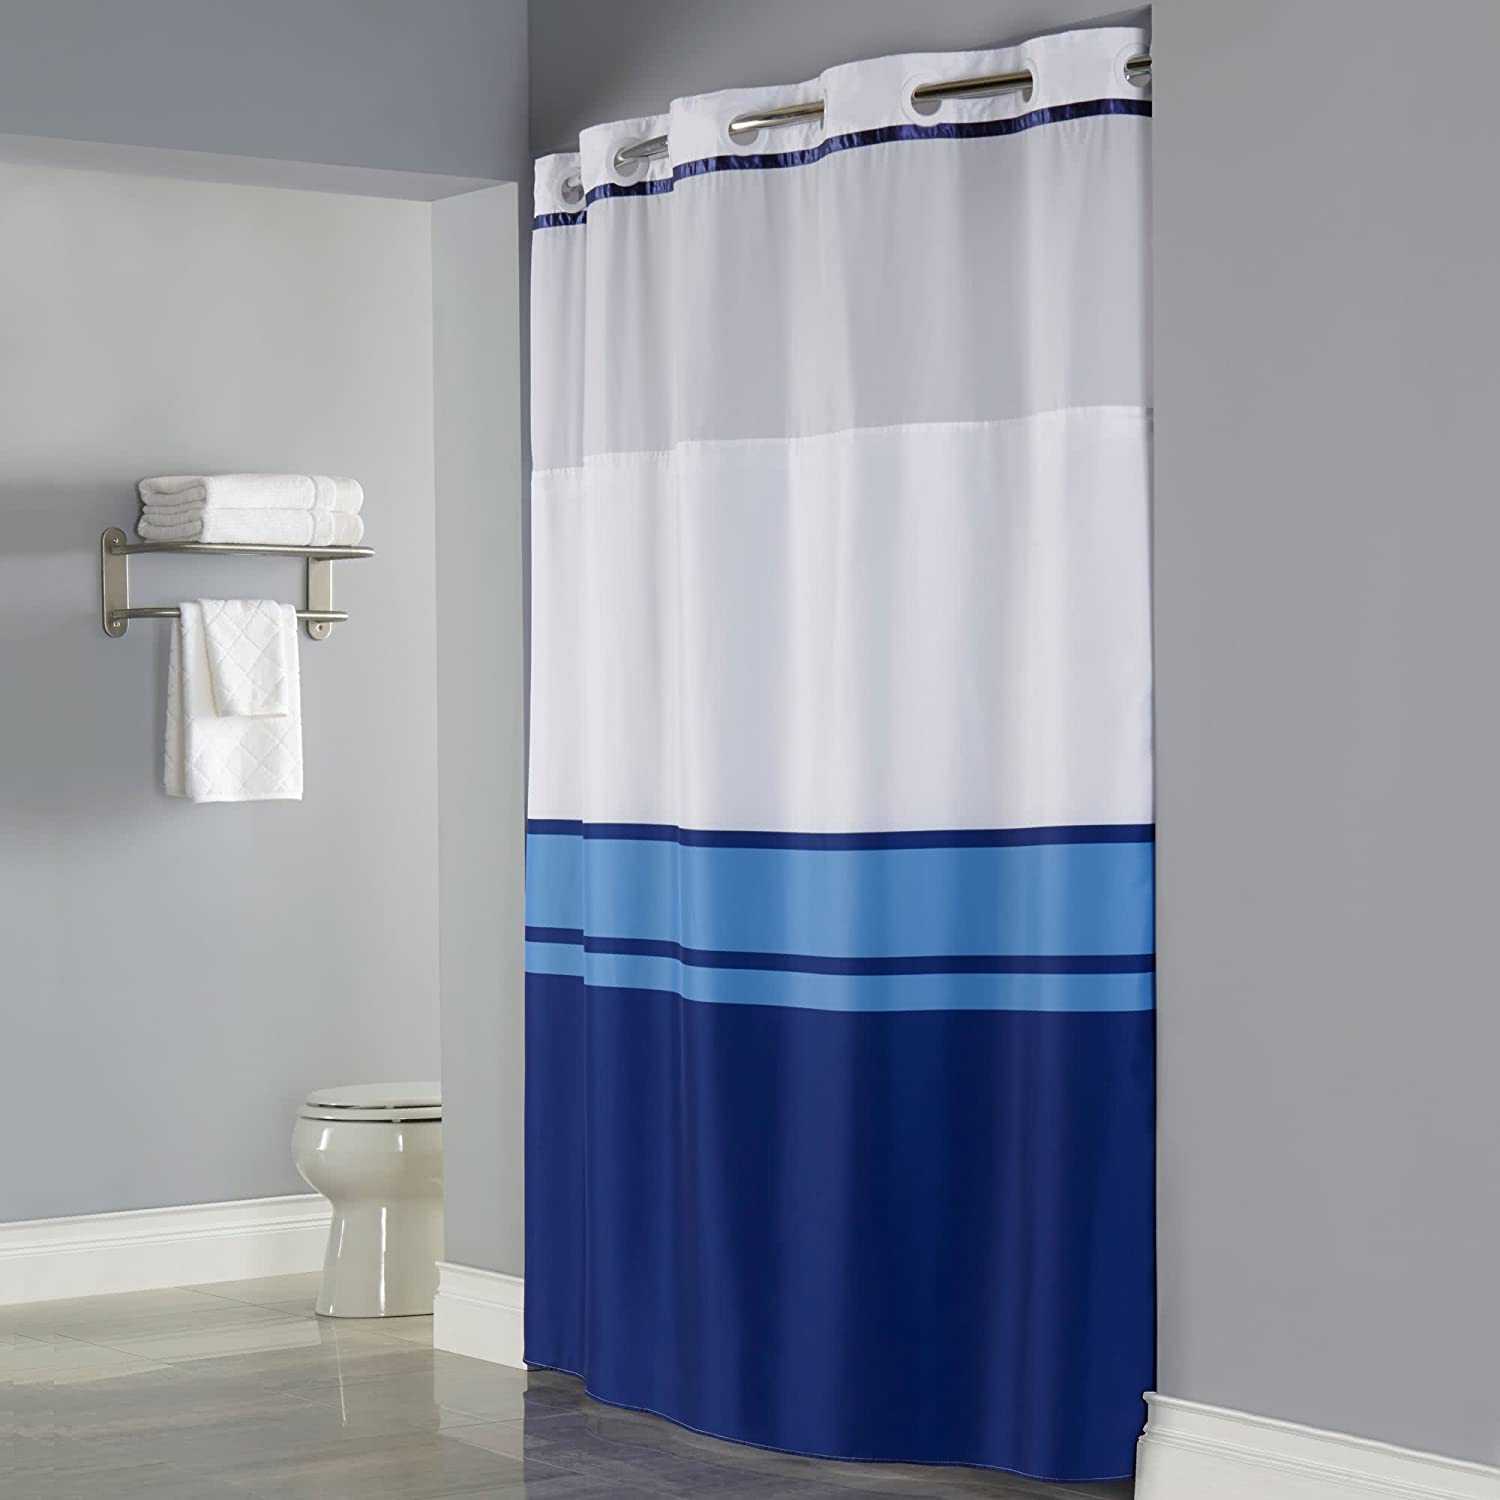 Hookless RBH40MY027 Windsor Shower Curtain with FABRIC Liner - bluee Stripe